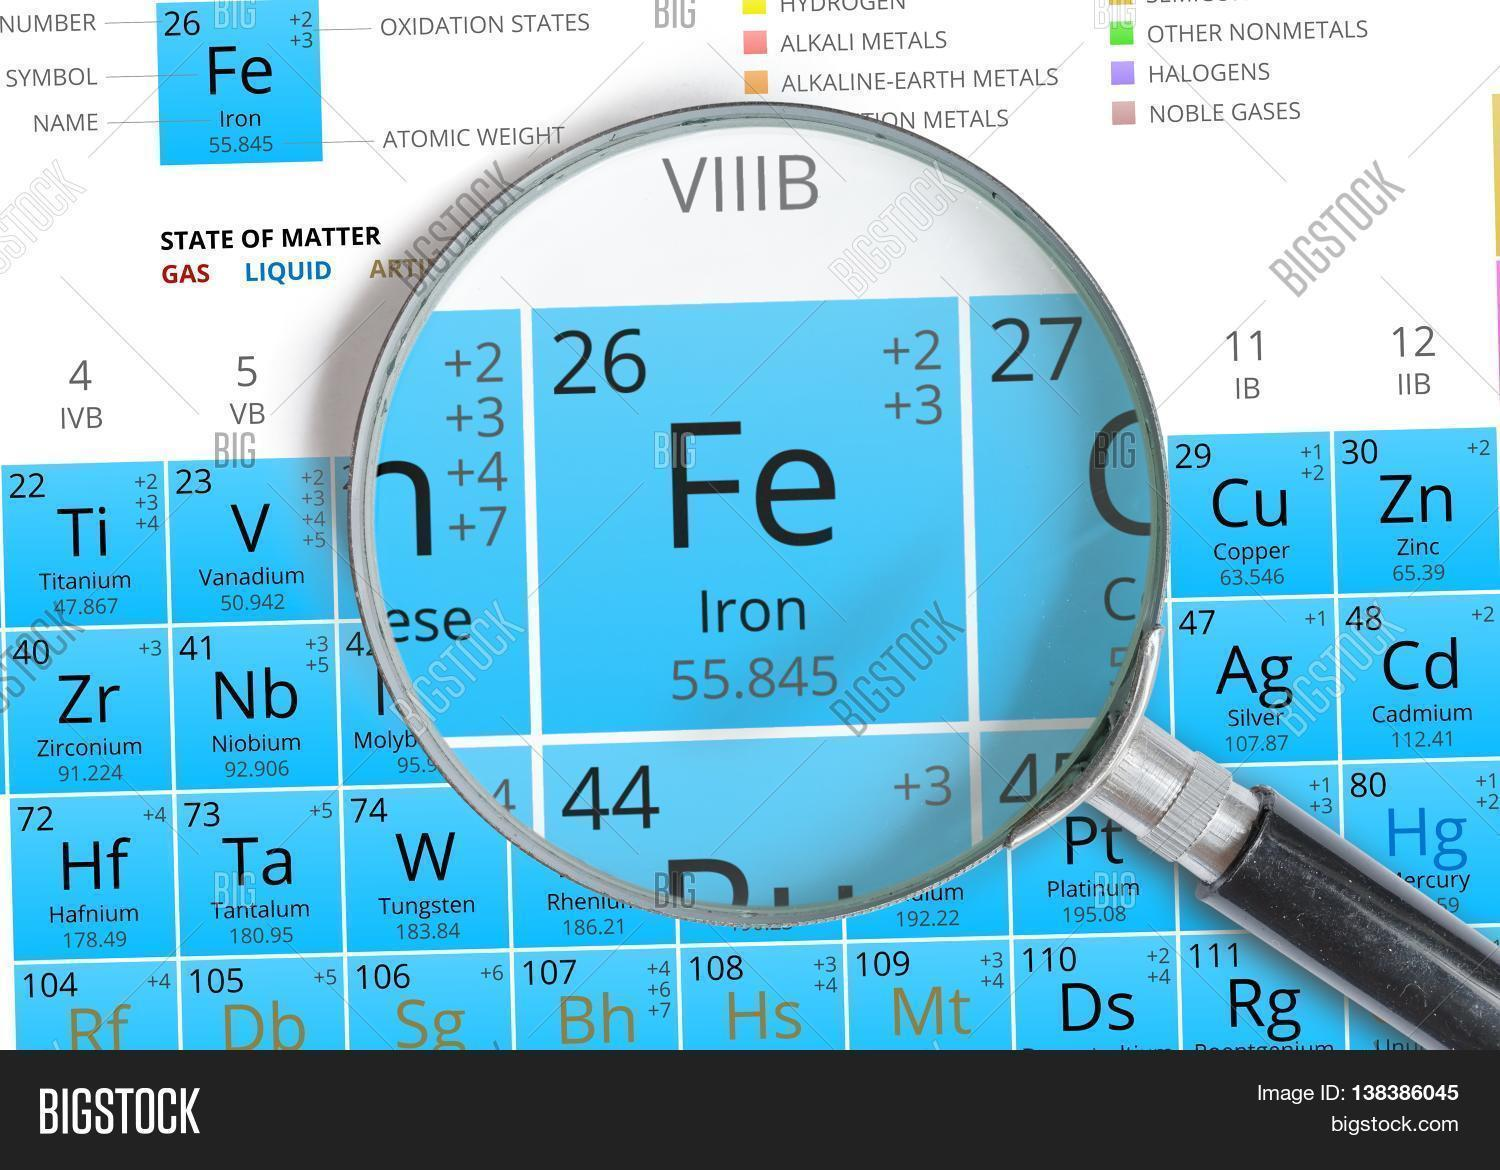 Iron symbol fe image photo free trial bigstock iron symbol fe element of the periodic table zoomed with magn urtaz Choice Image